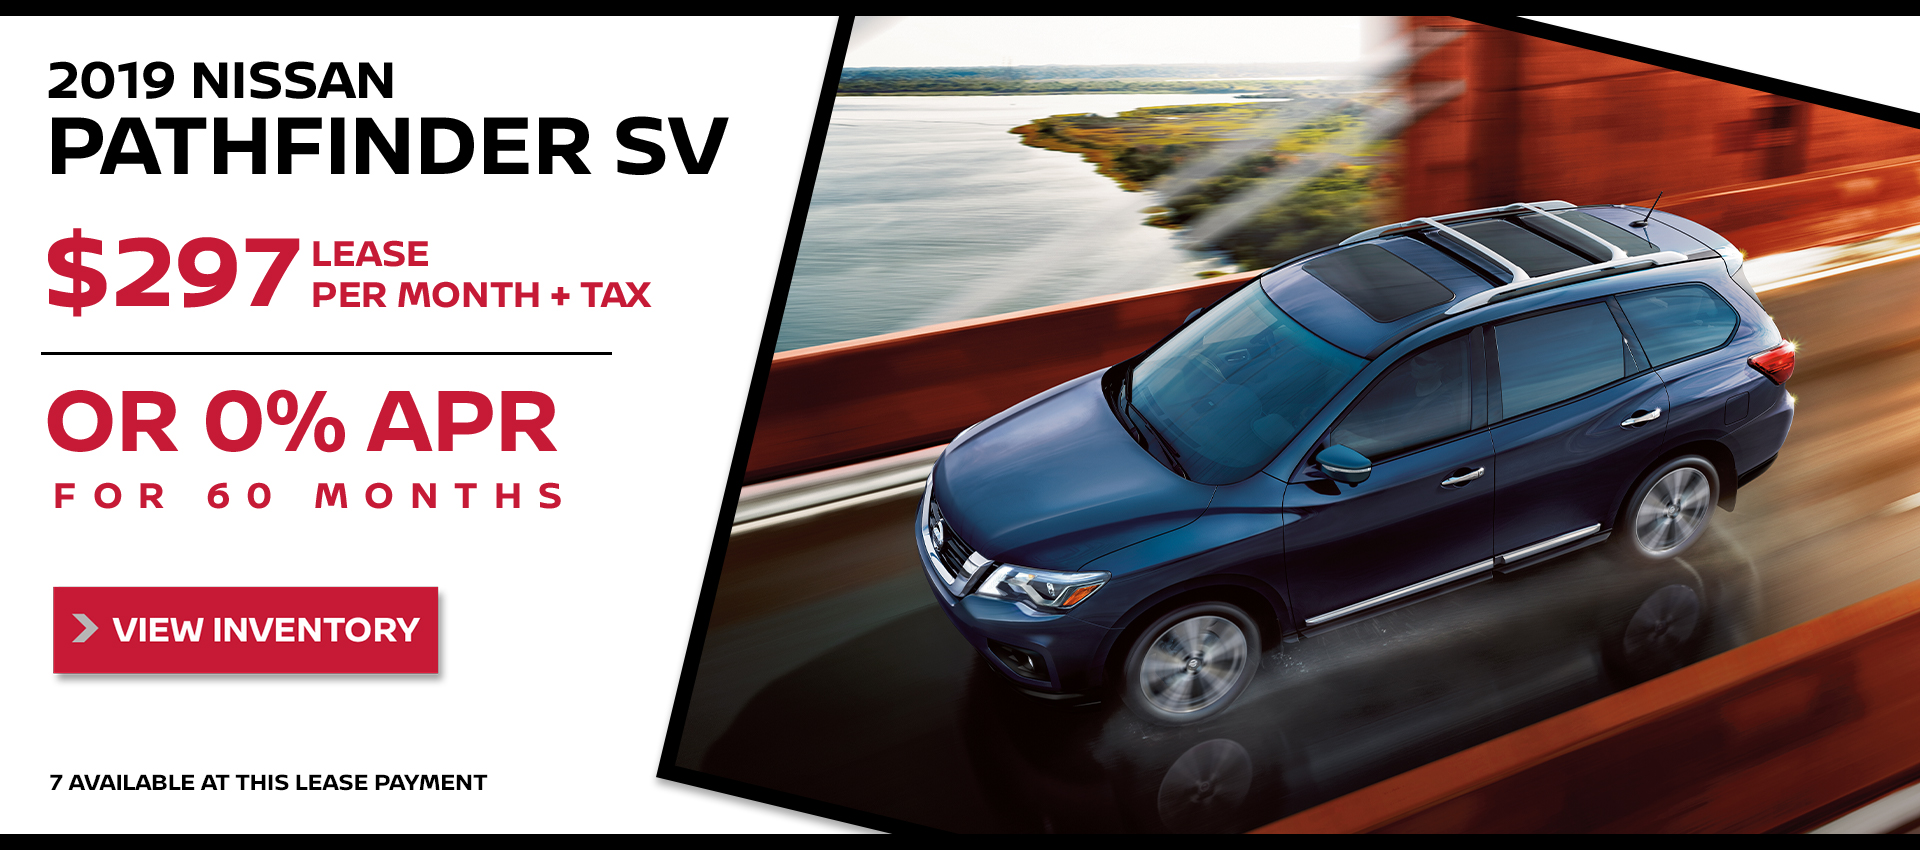 Mossy Nissan - Nissan Pathfinder $297 Lease HP